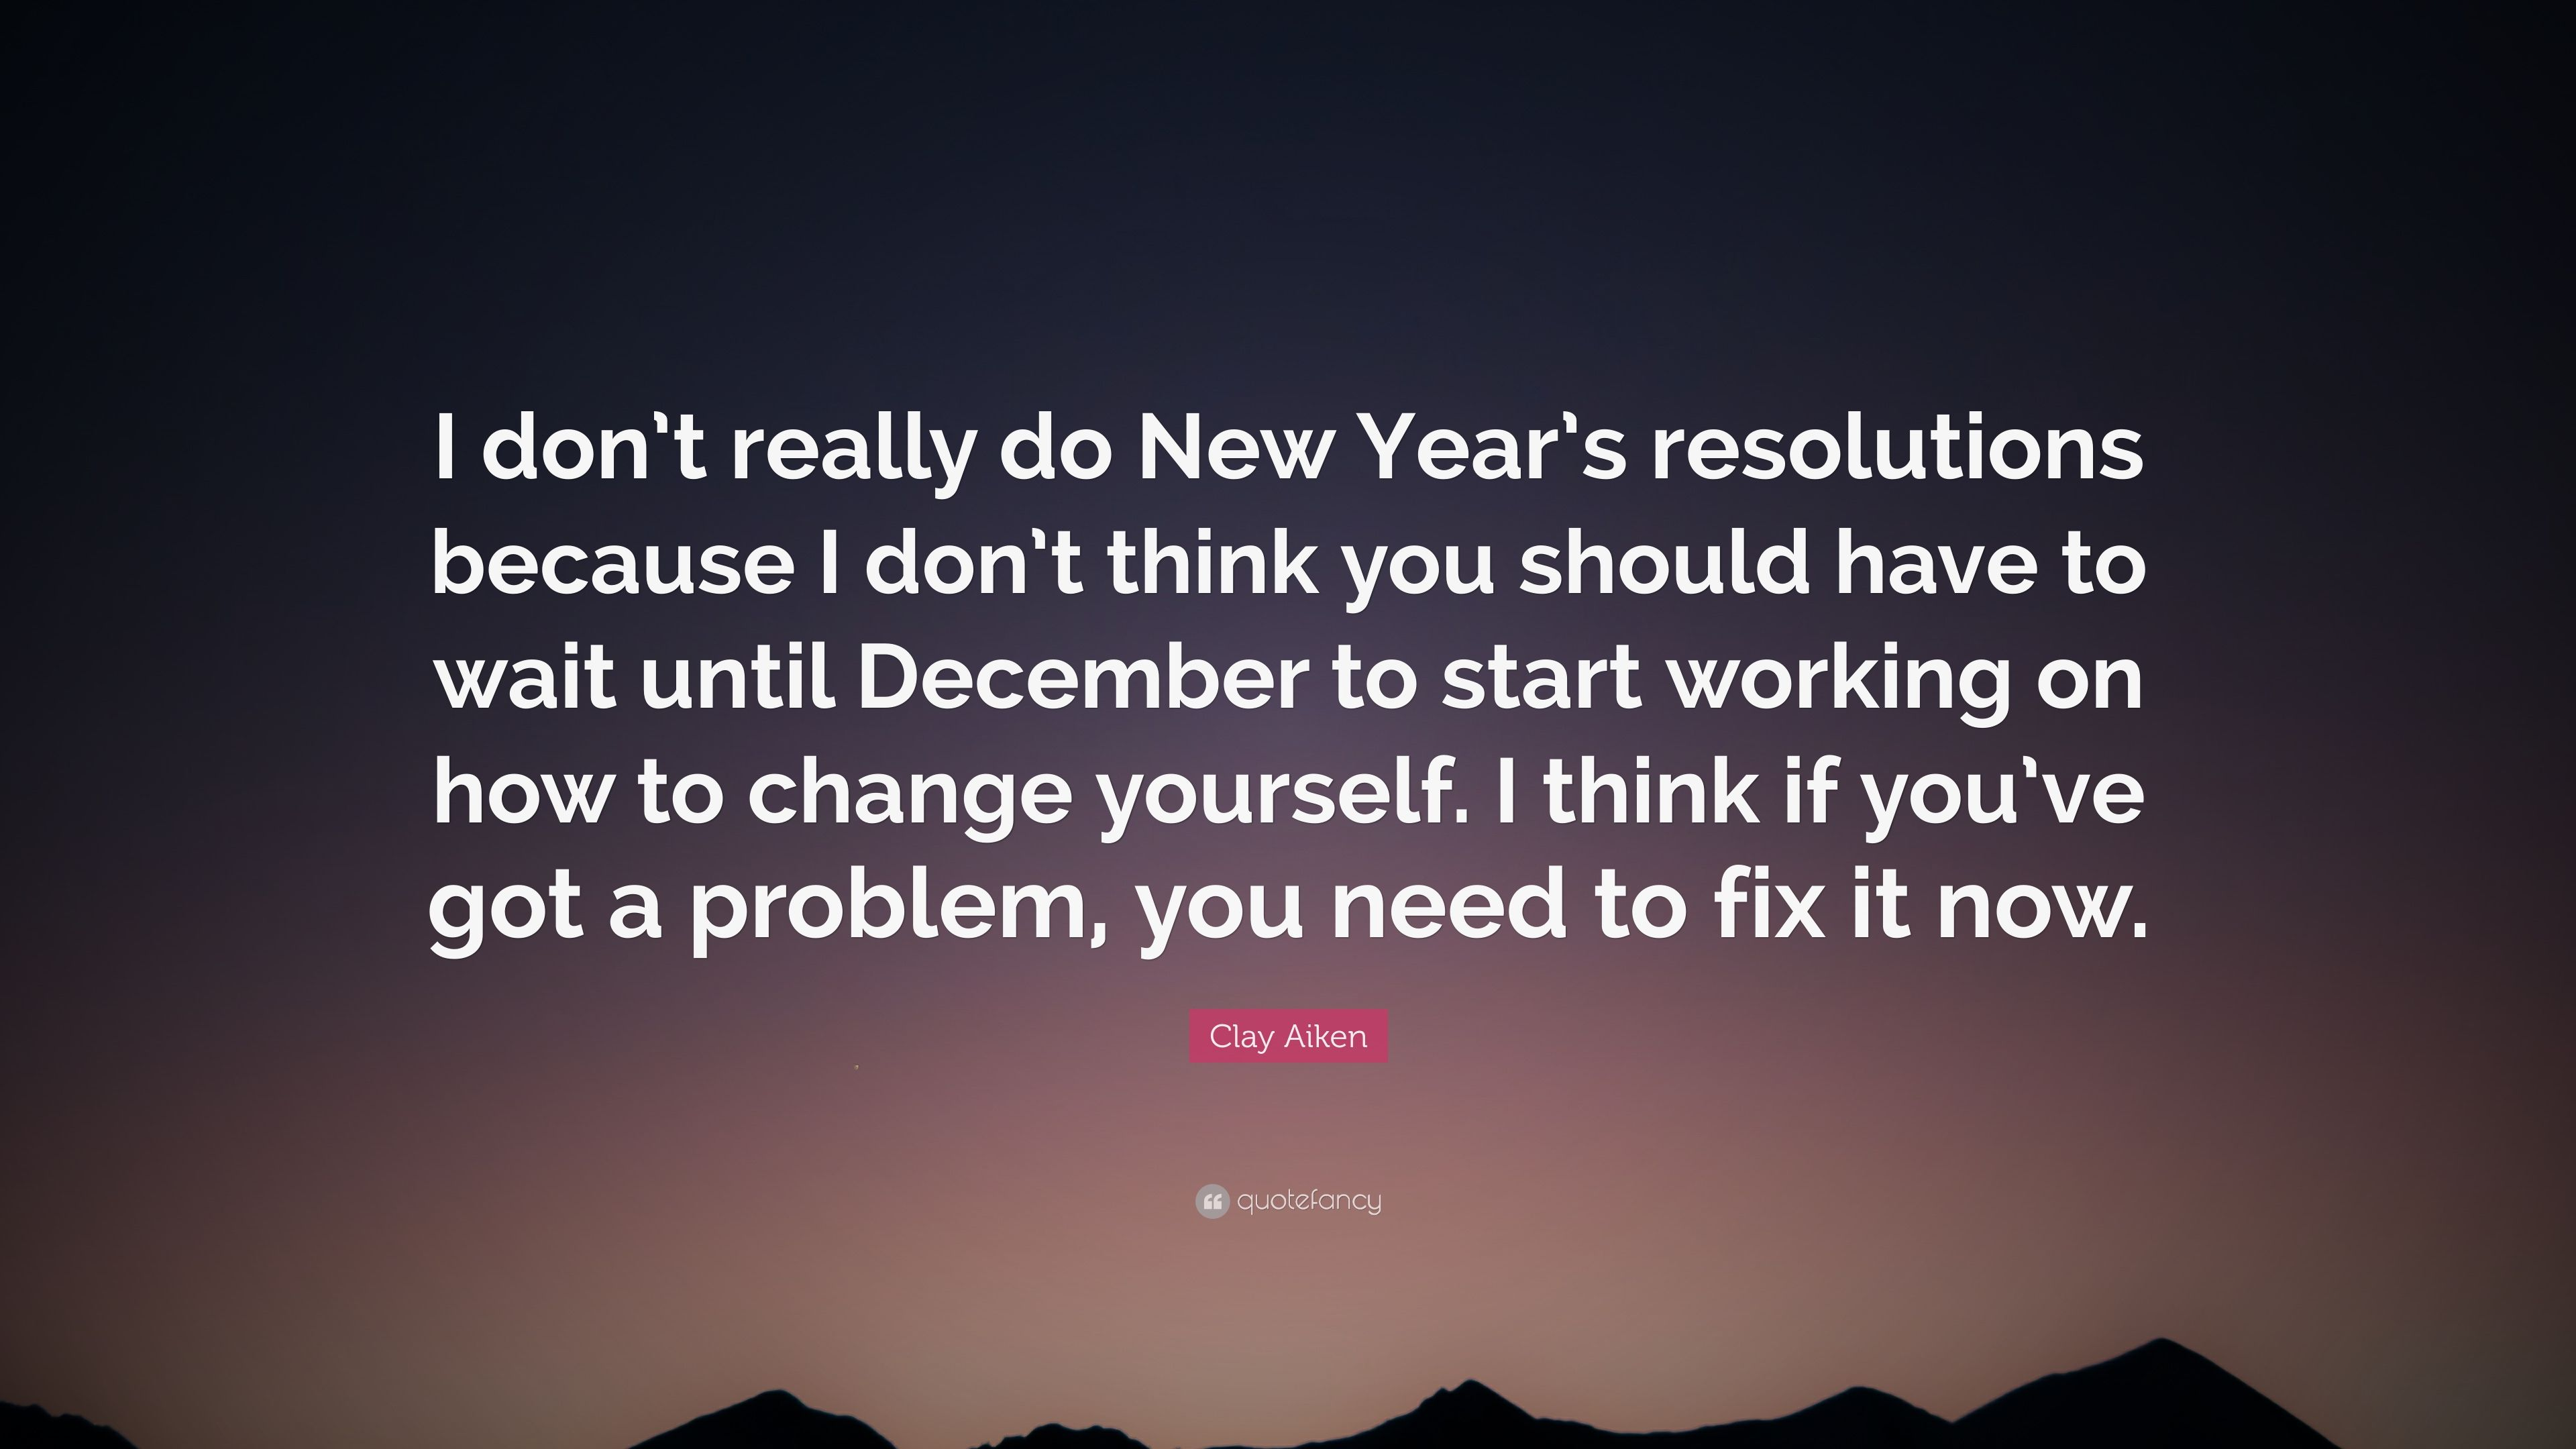 clay aiken quote i don t really do new year s resolutions because i don t think you should. Black Bedroom Furniture Sets. Home Design Ideas